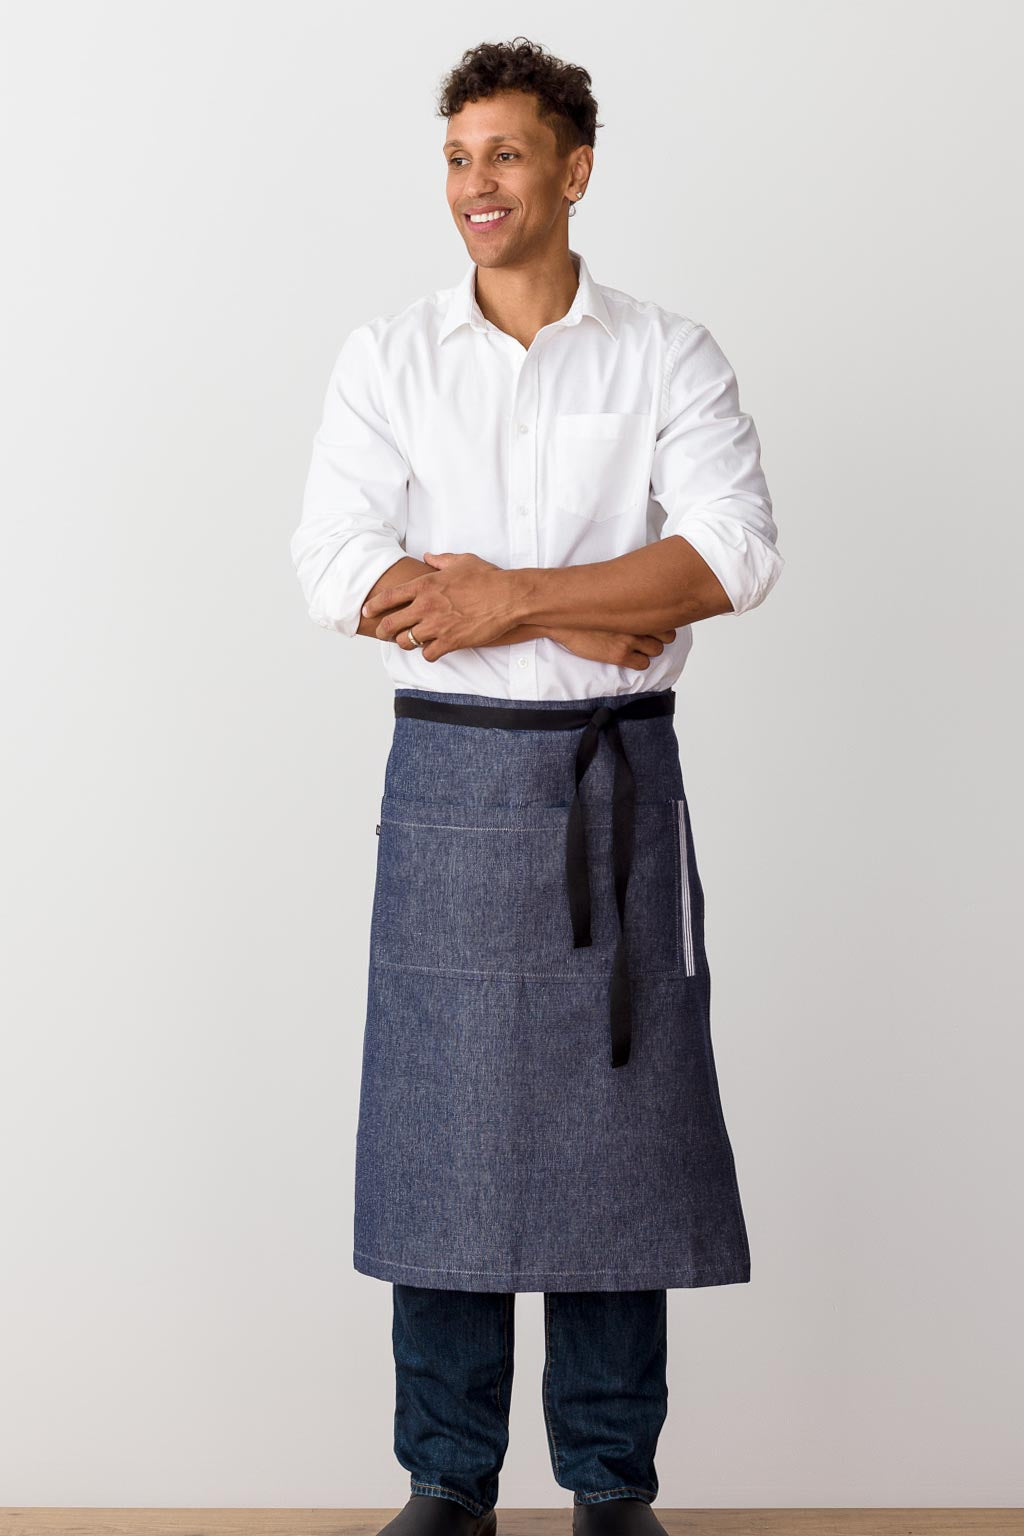 Bistro Longy Apron Blue Denim with Black Straps, for Men or Women